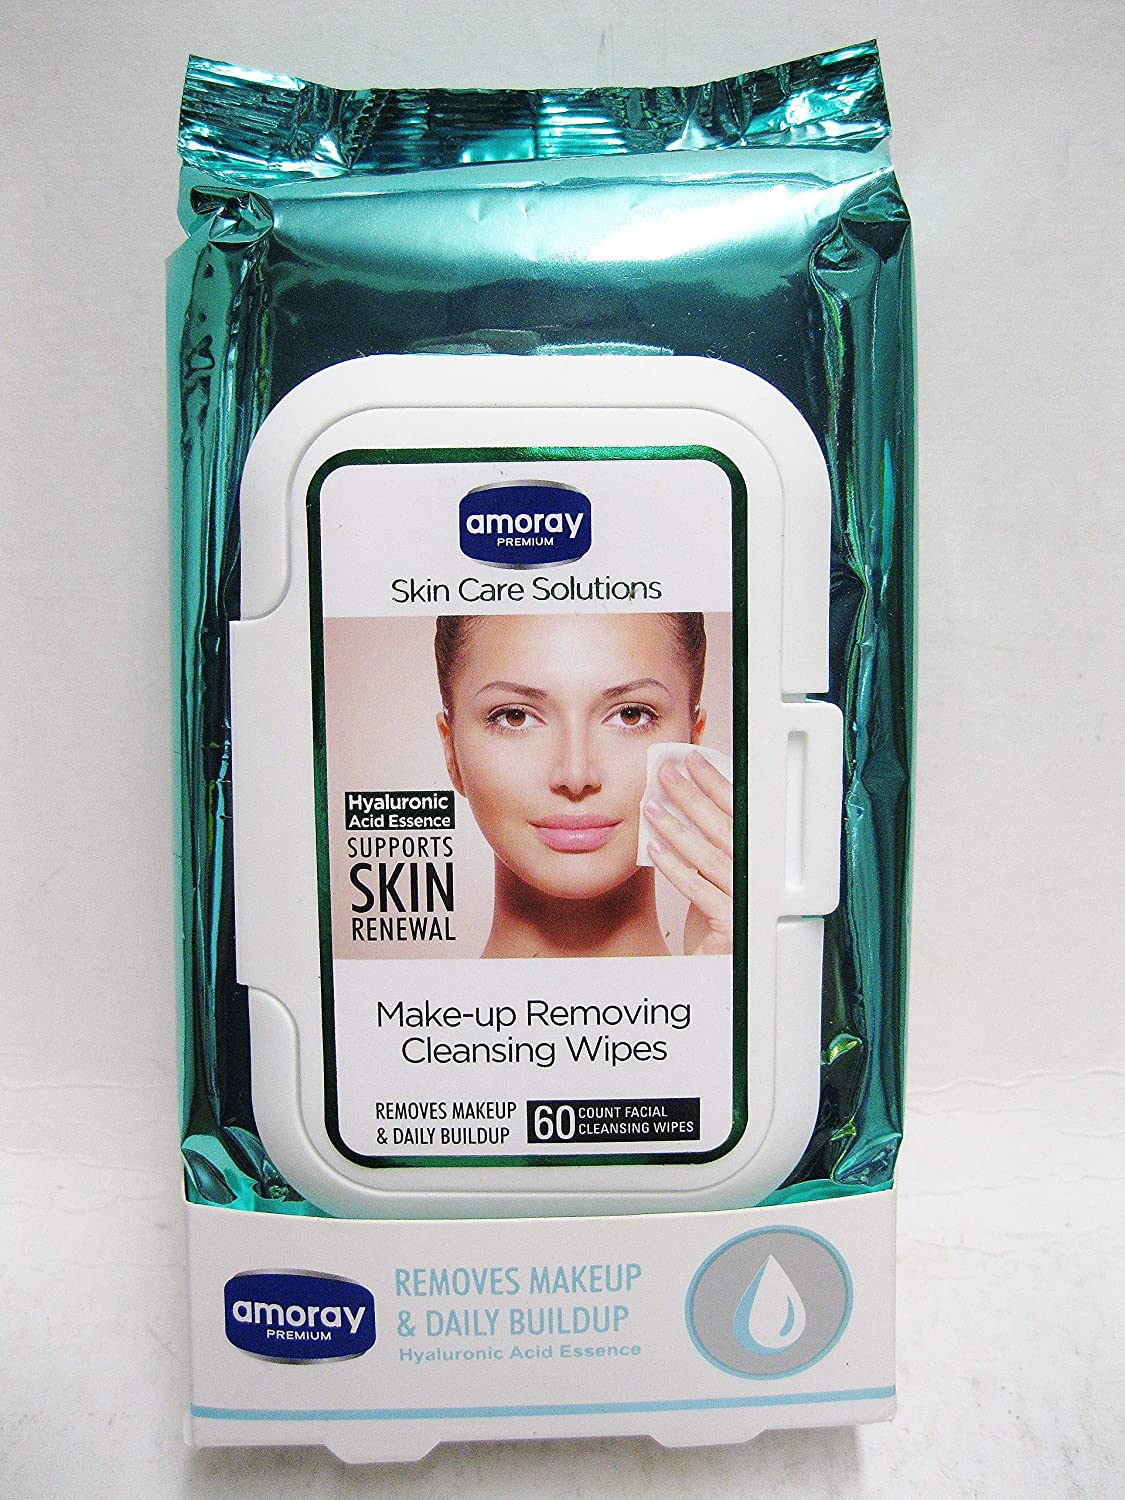 Amory Professional Make-up Facial Cleansing Wieps 60ct (Compare to Neutrogina 28ct)